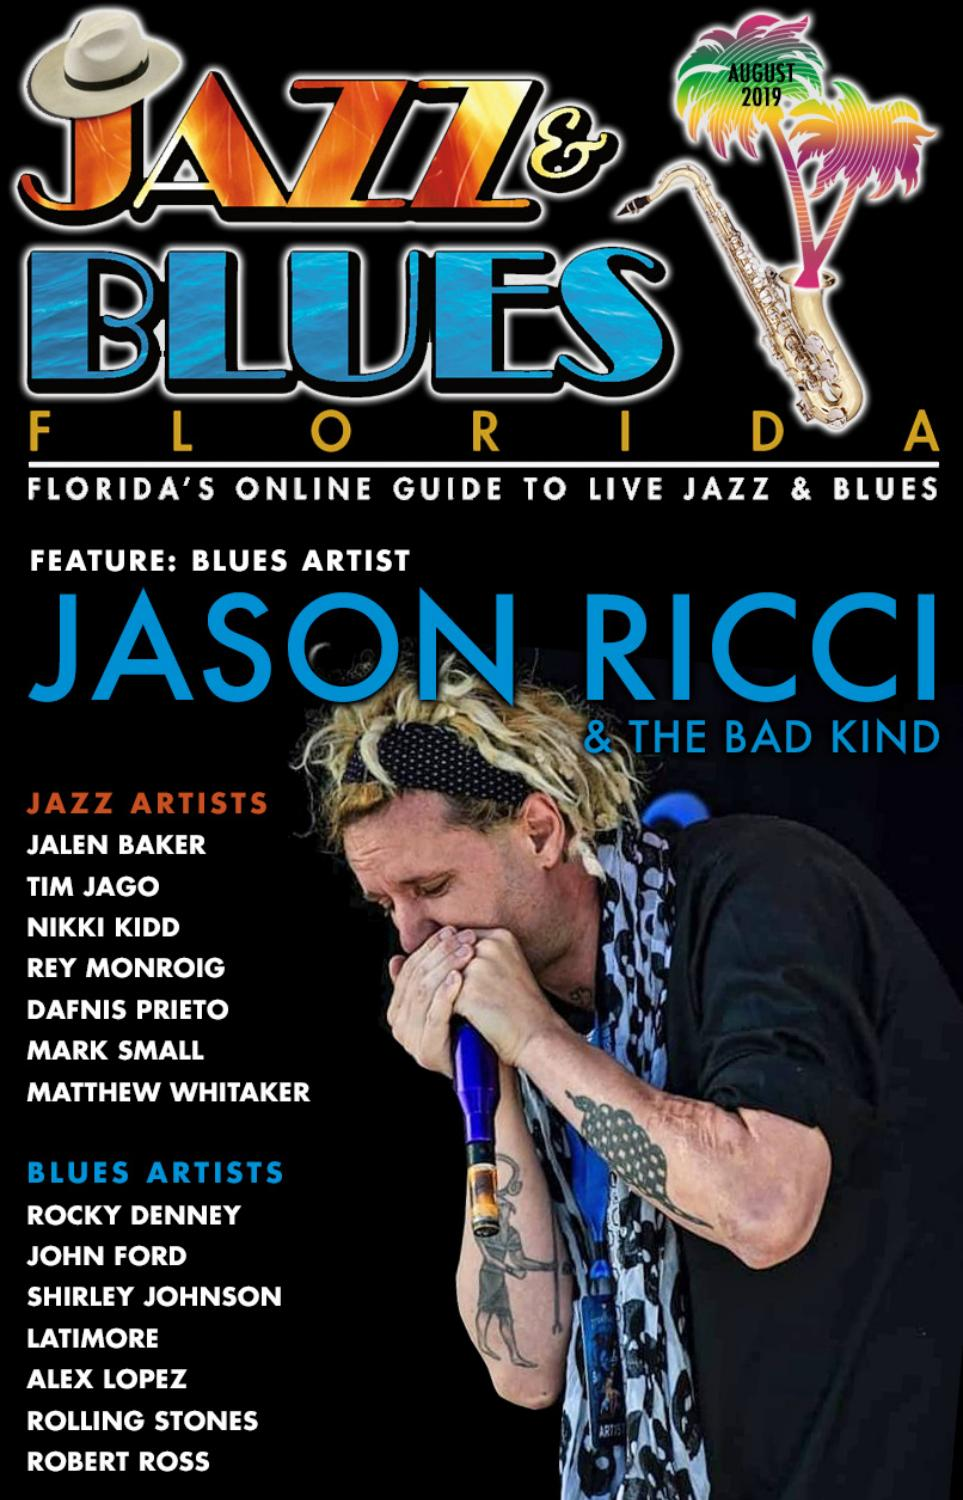 Jazz & Blues Florida August 2019 Issue by JazzBluesFlorida